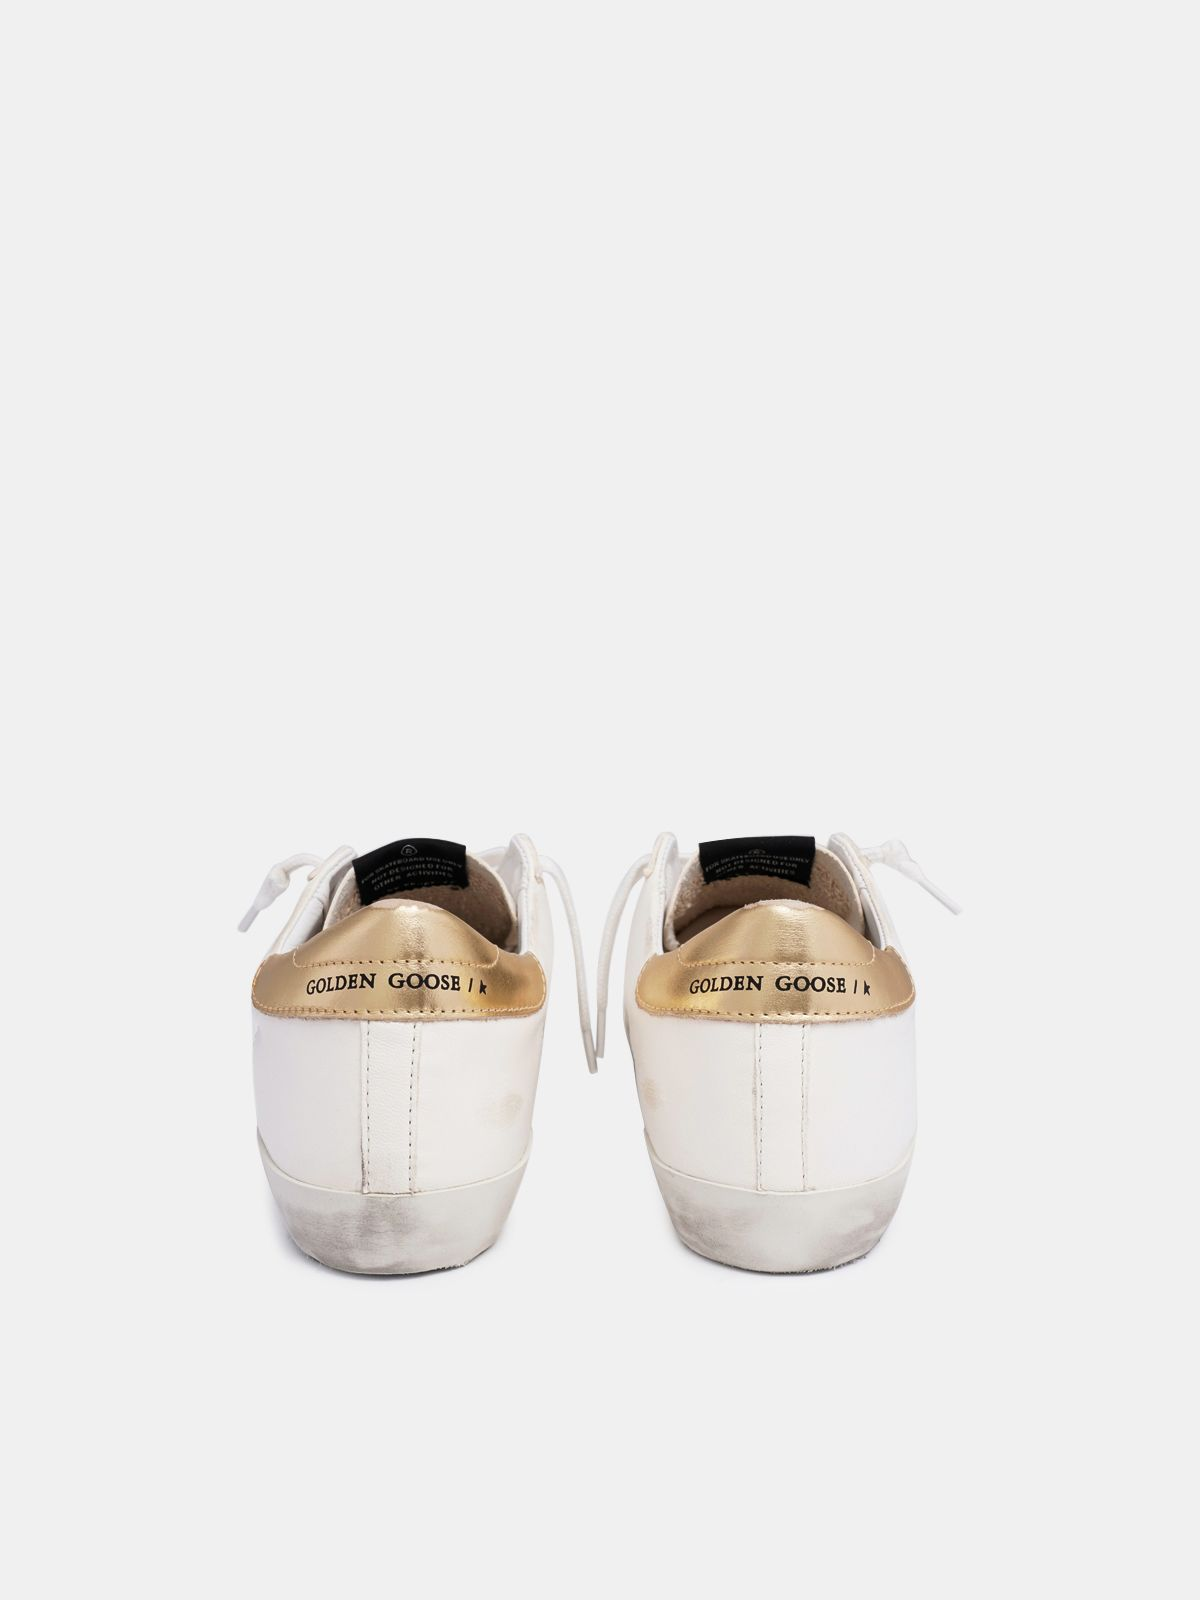 Golden Goose - Sneakers Super-Star bianche con talloncino dorato in